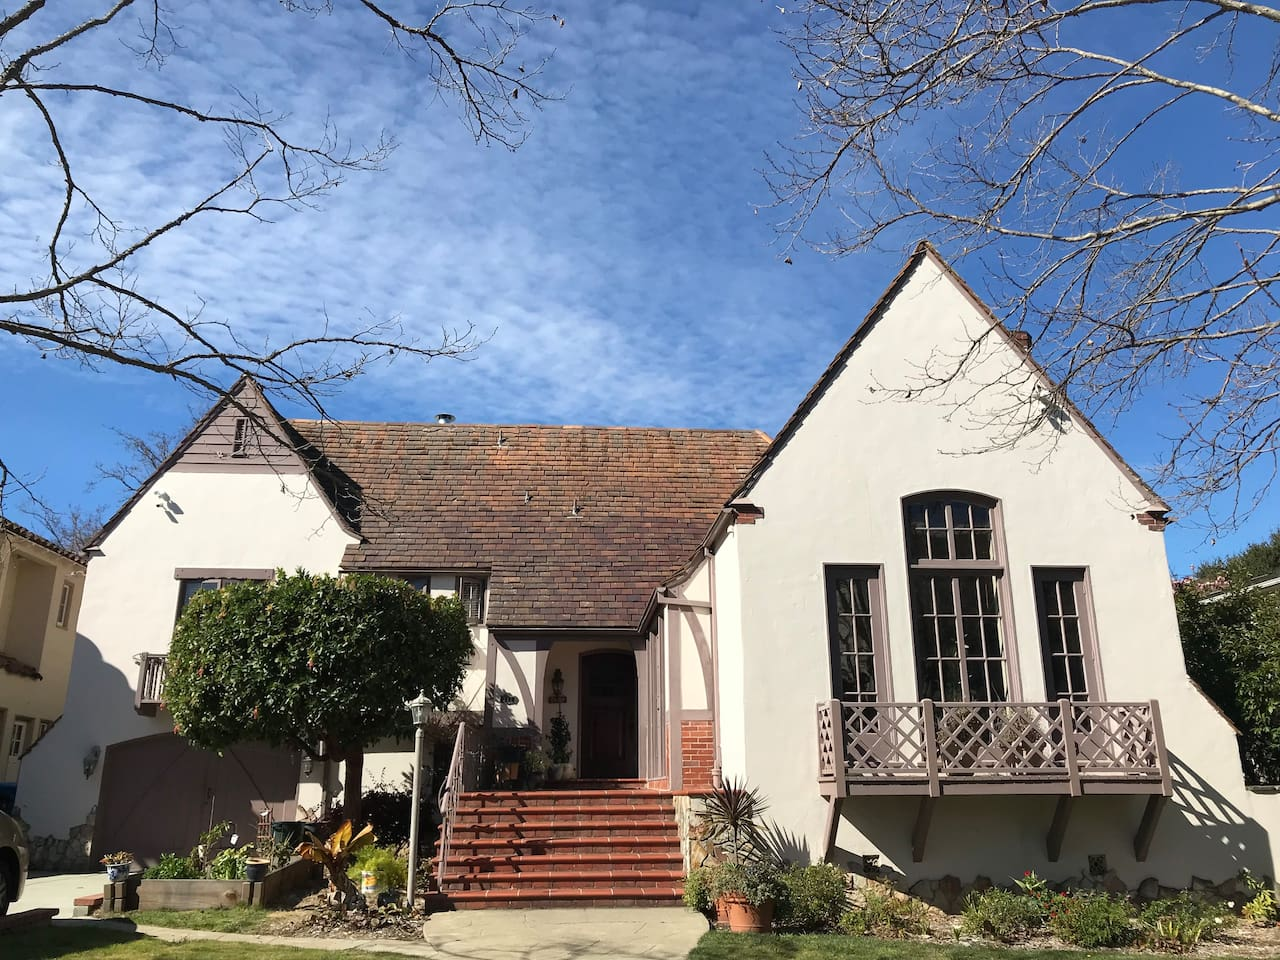 Spacious English Tudor style home in great upscale neighborhood close to schools, library, downtown shops and transportation.  Enjoy a stroll through nearby Central Park or challenge yourself on the nearby hills.